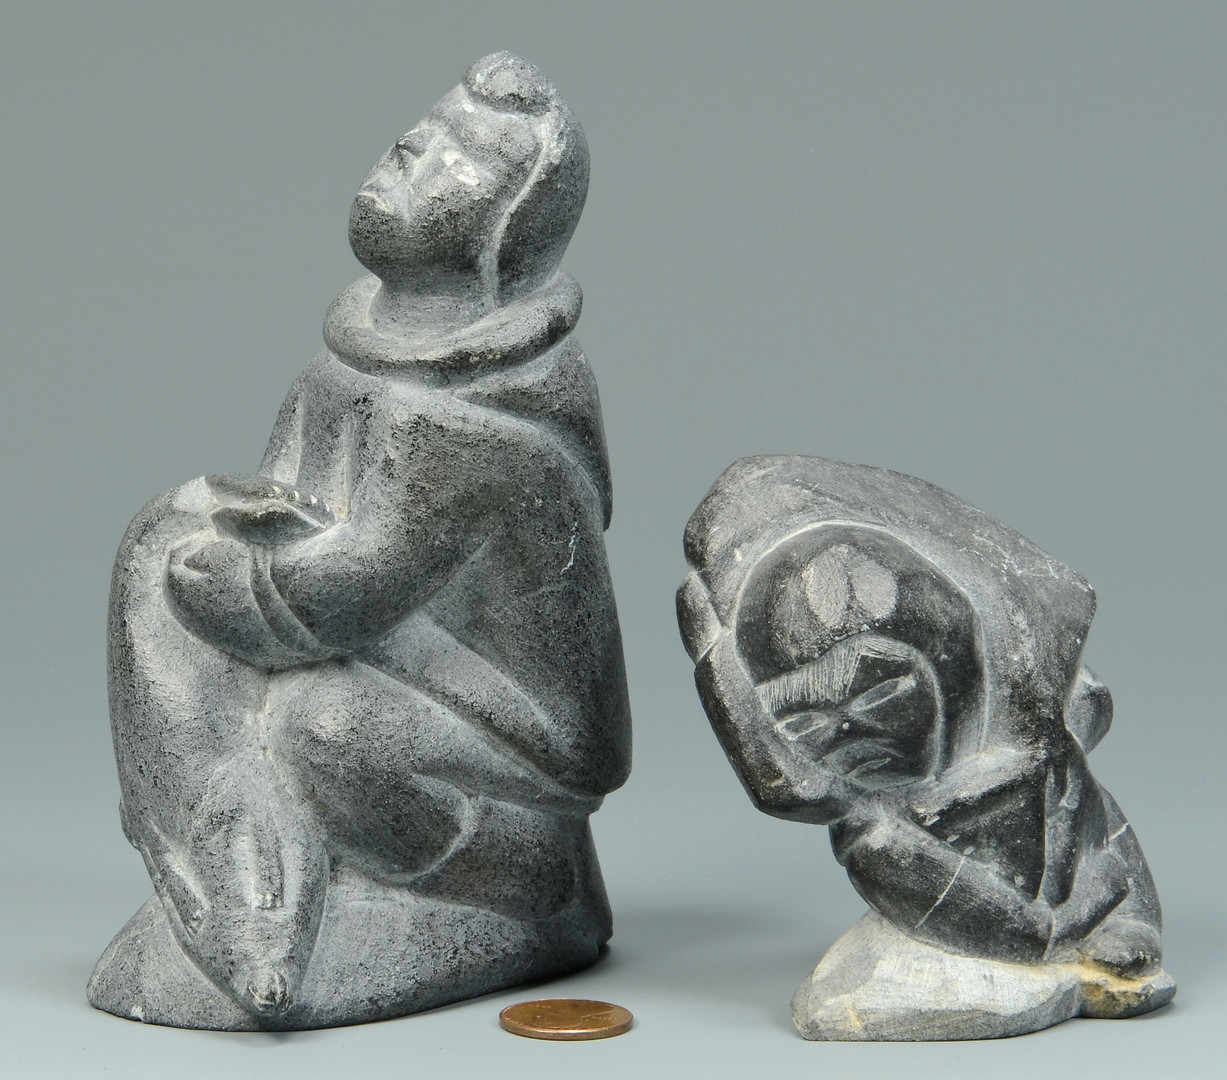 Lot 612: 2 Signed Inuit Stone Sculptures